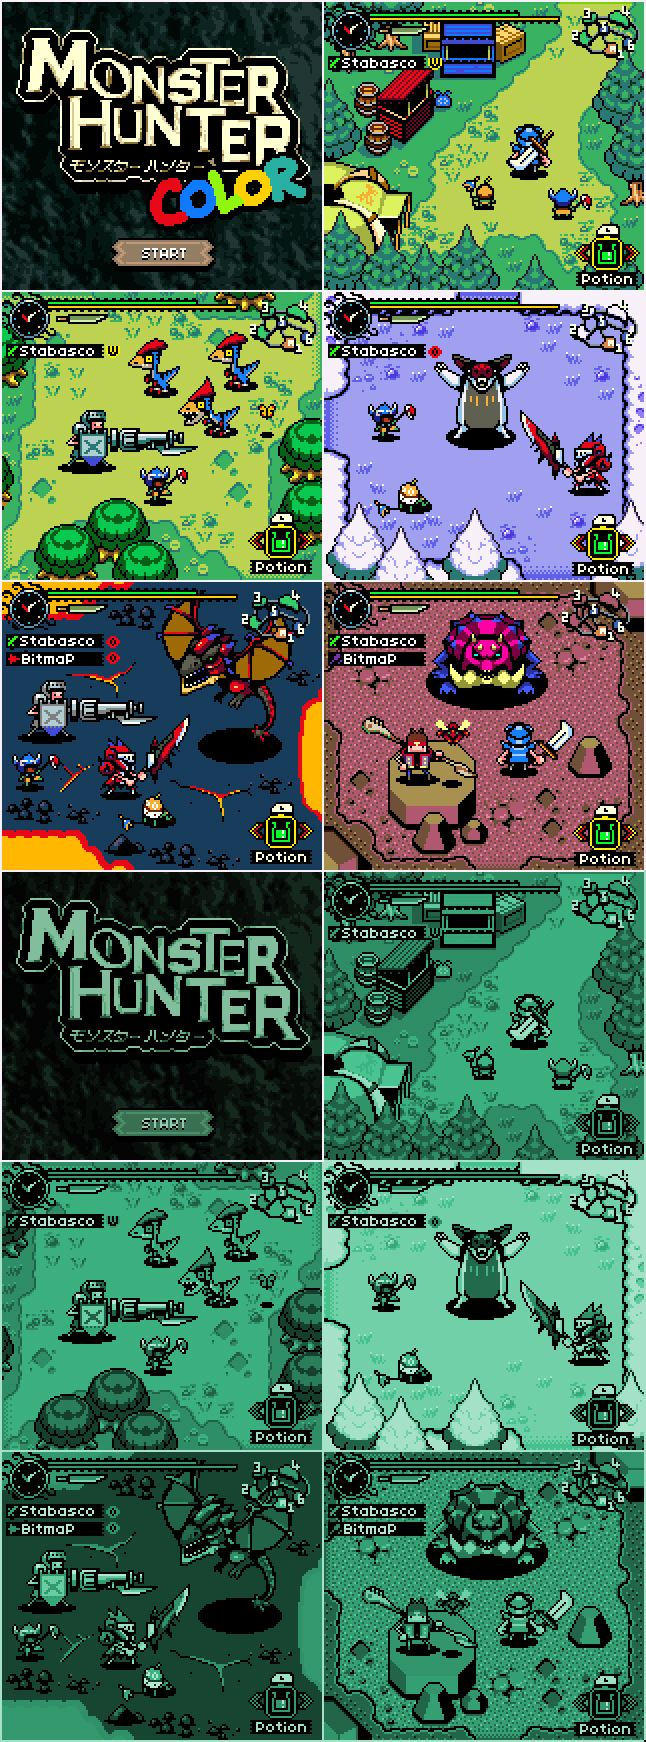 Monster Hunter in Game Boy and Game Boy Color